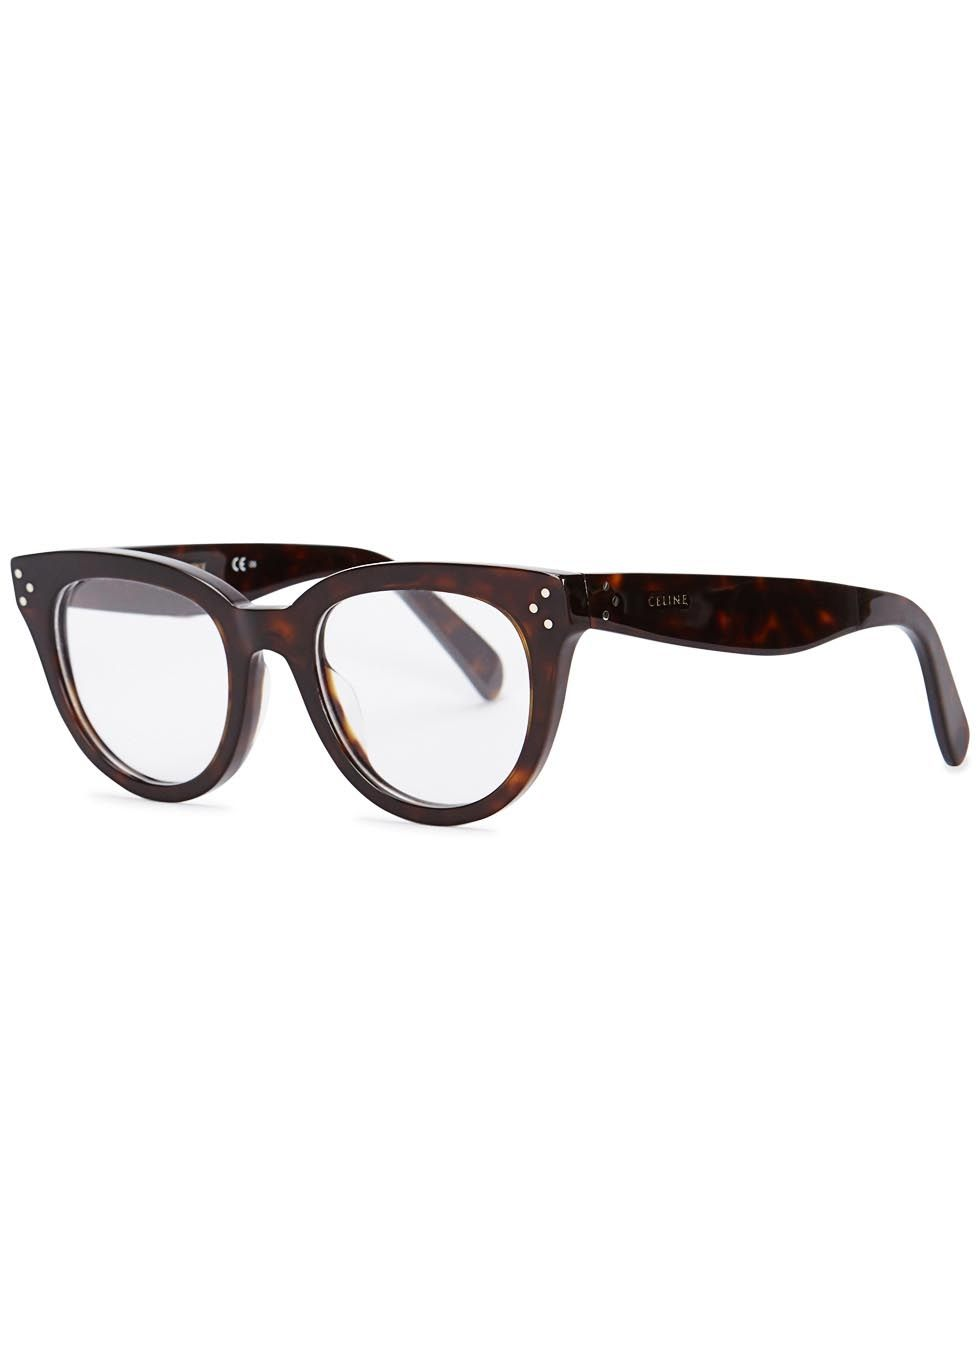 ee802ed4d32 Céline tortoiseshell acetate optical glasses Can be fitted with prescription  lenses Designer-stamped arm